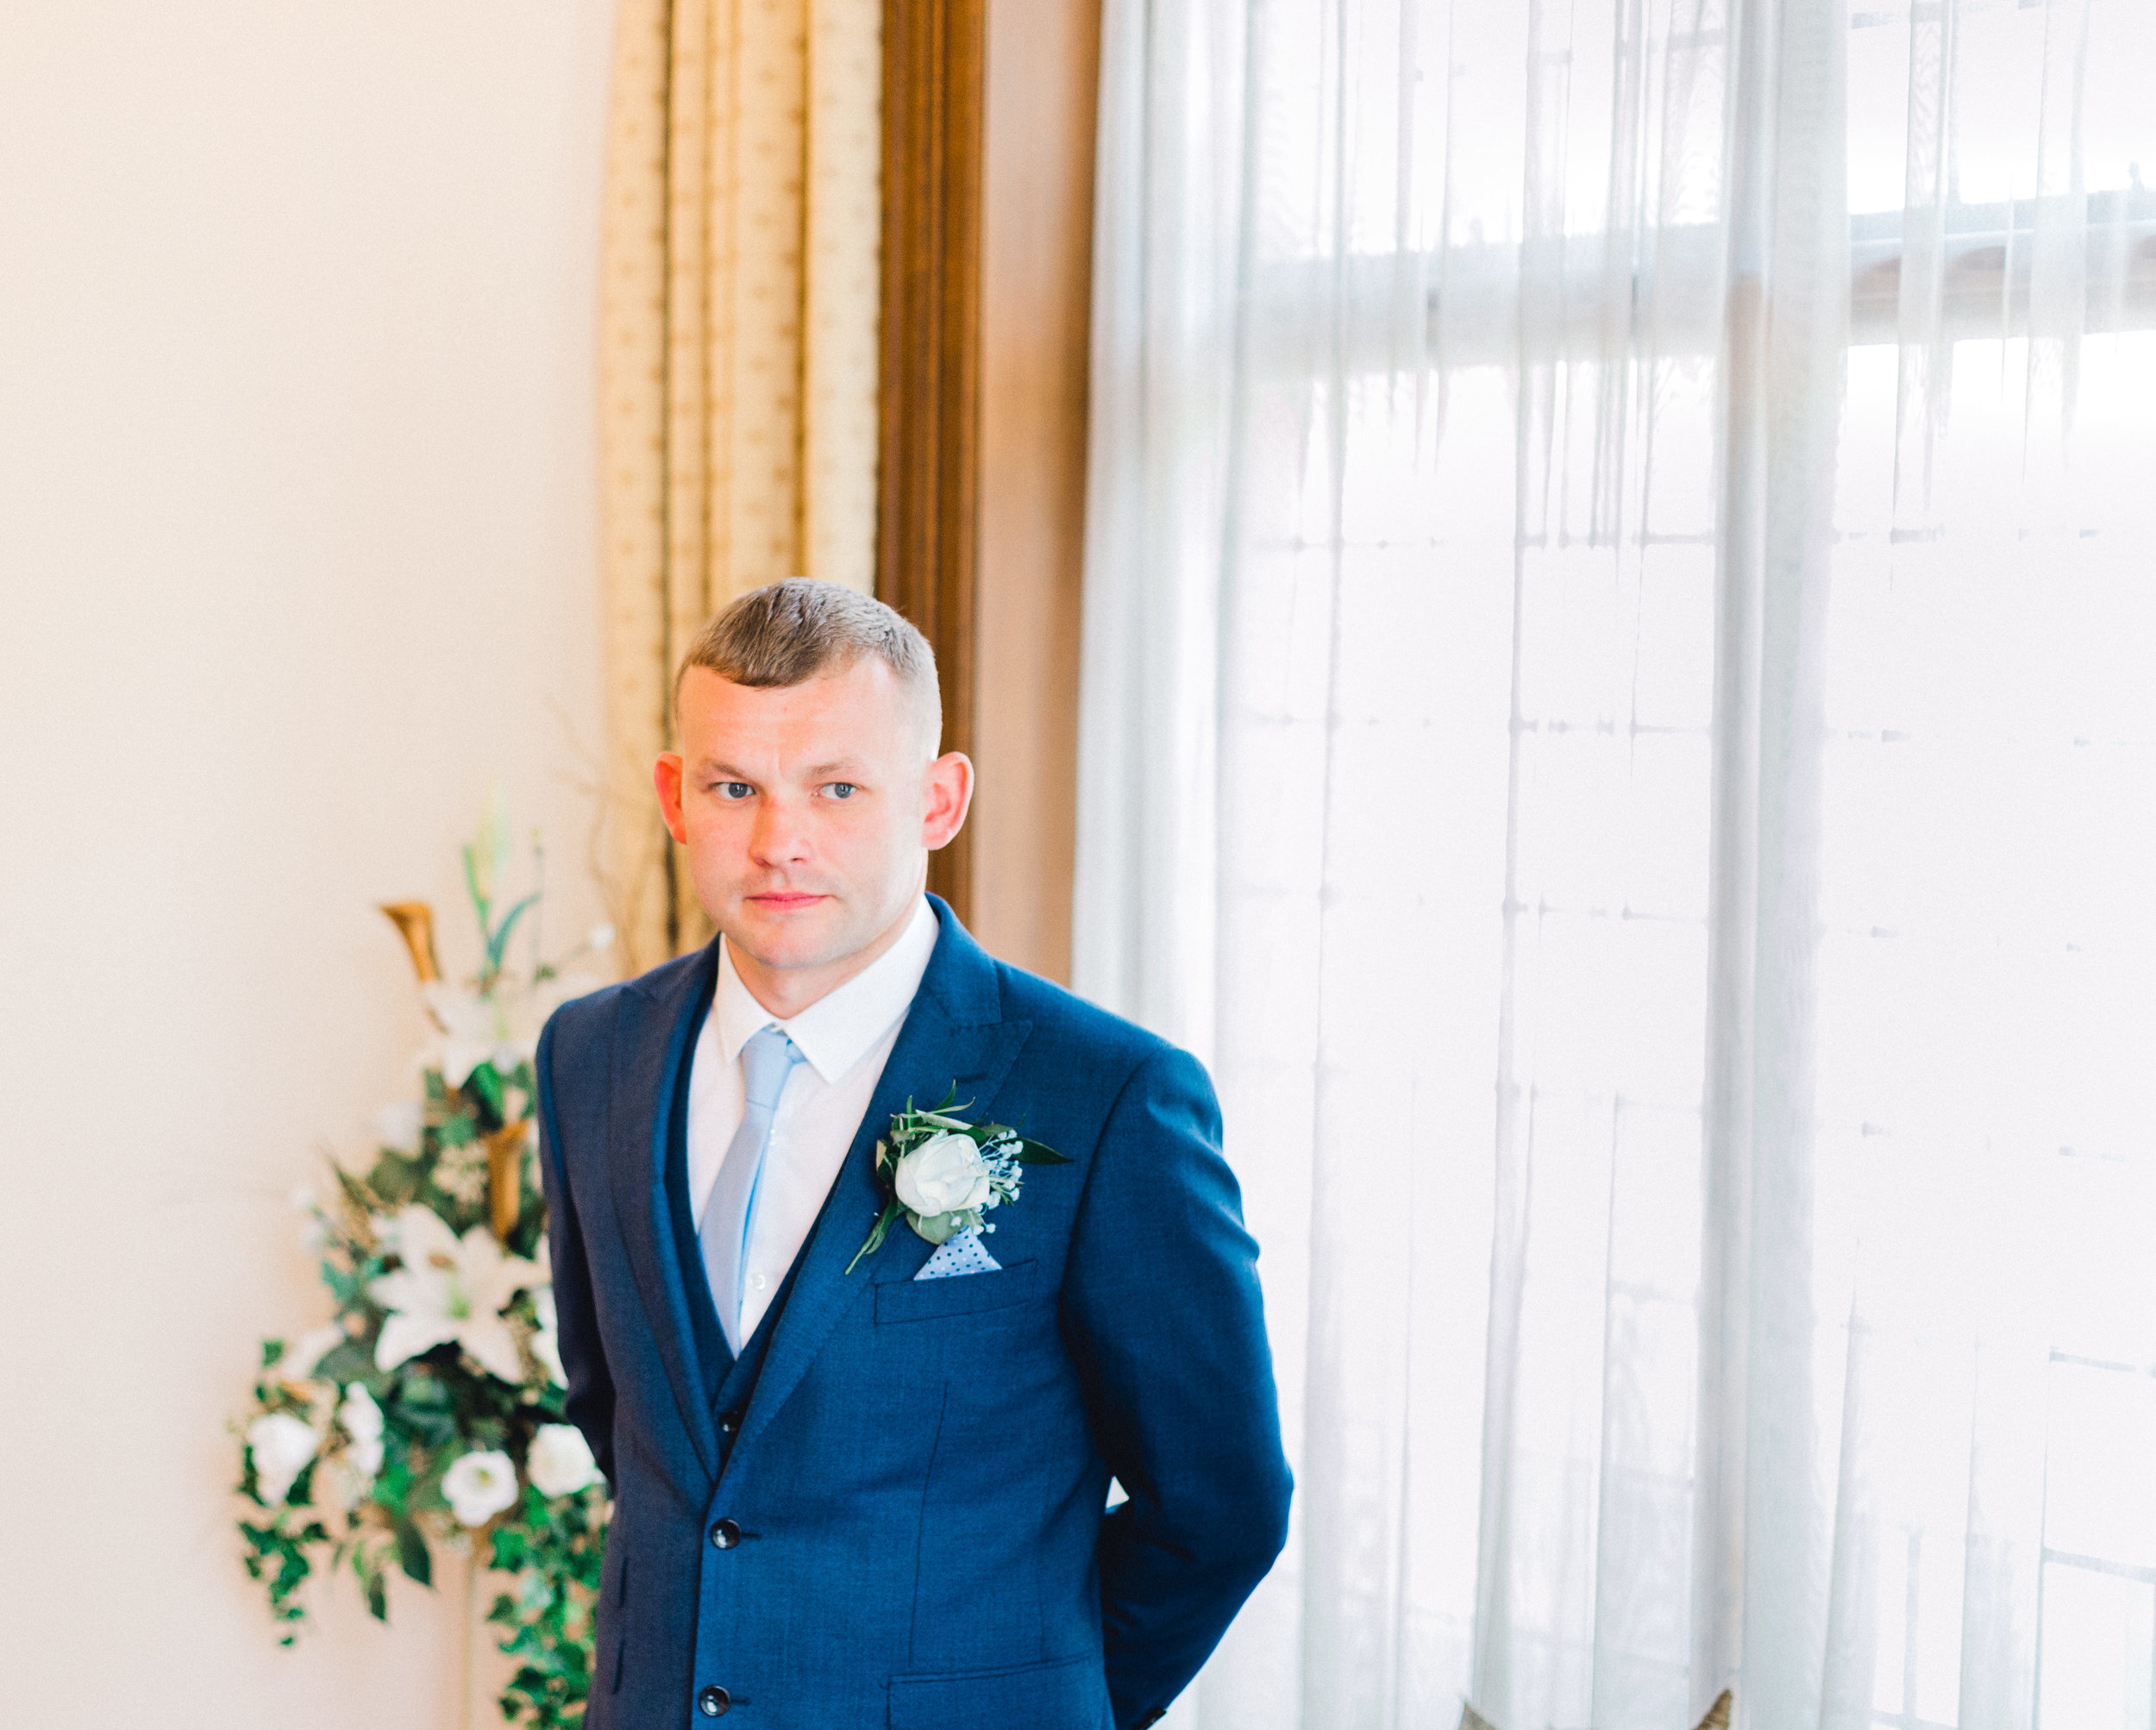 nervous groom waiting for the bride during wedding ceremony